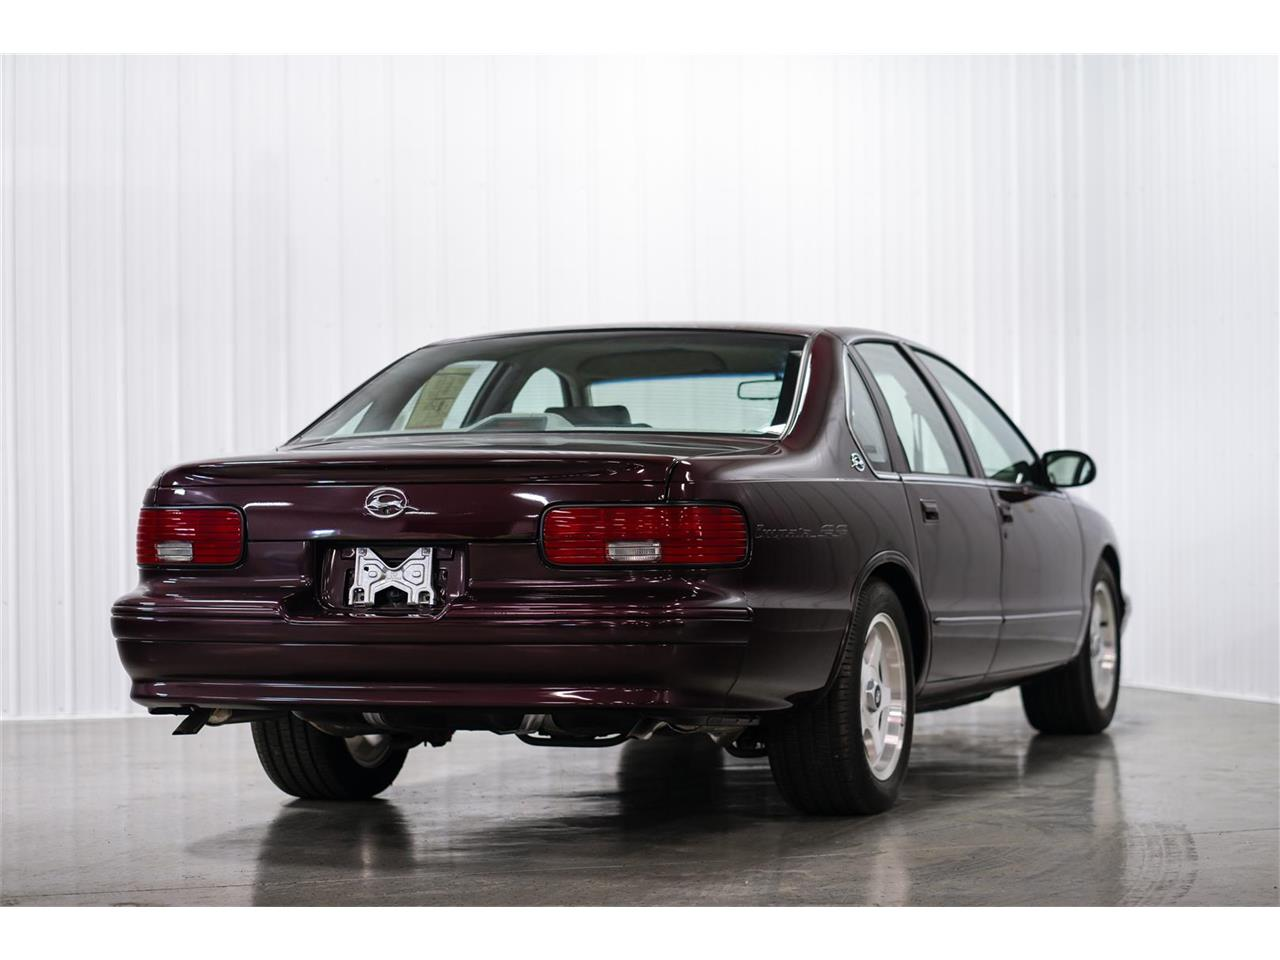 Large Picture of '96 Chevrolet Impala SS - $24,900.00 Offered by GQ Creations Auto LLC - QDDS